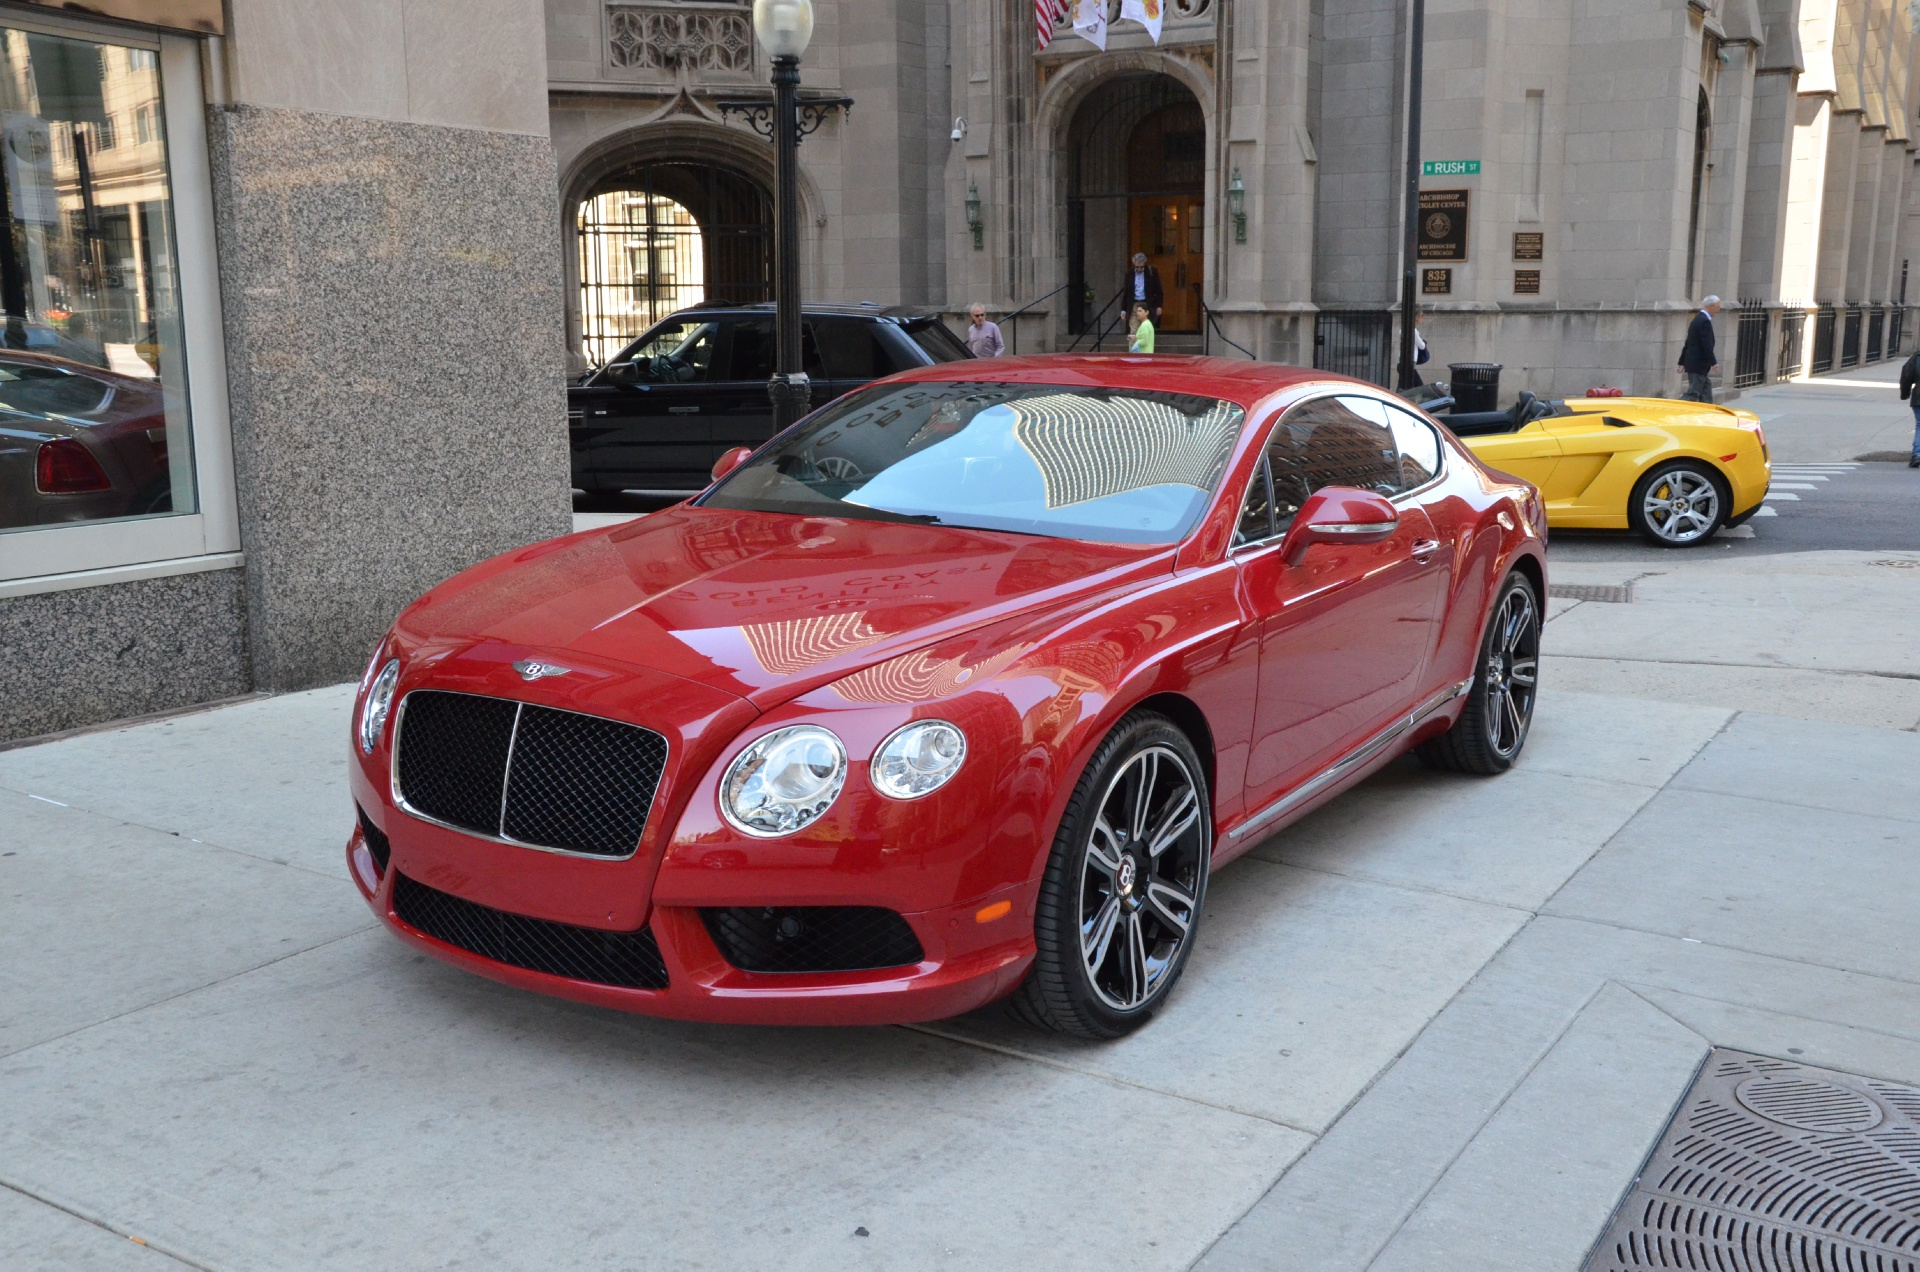 2013 Bentley Continental GT V8 Stock B425 for sale near Chicago